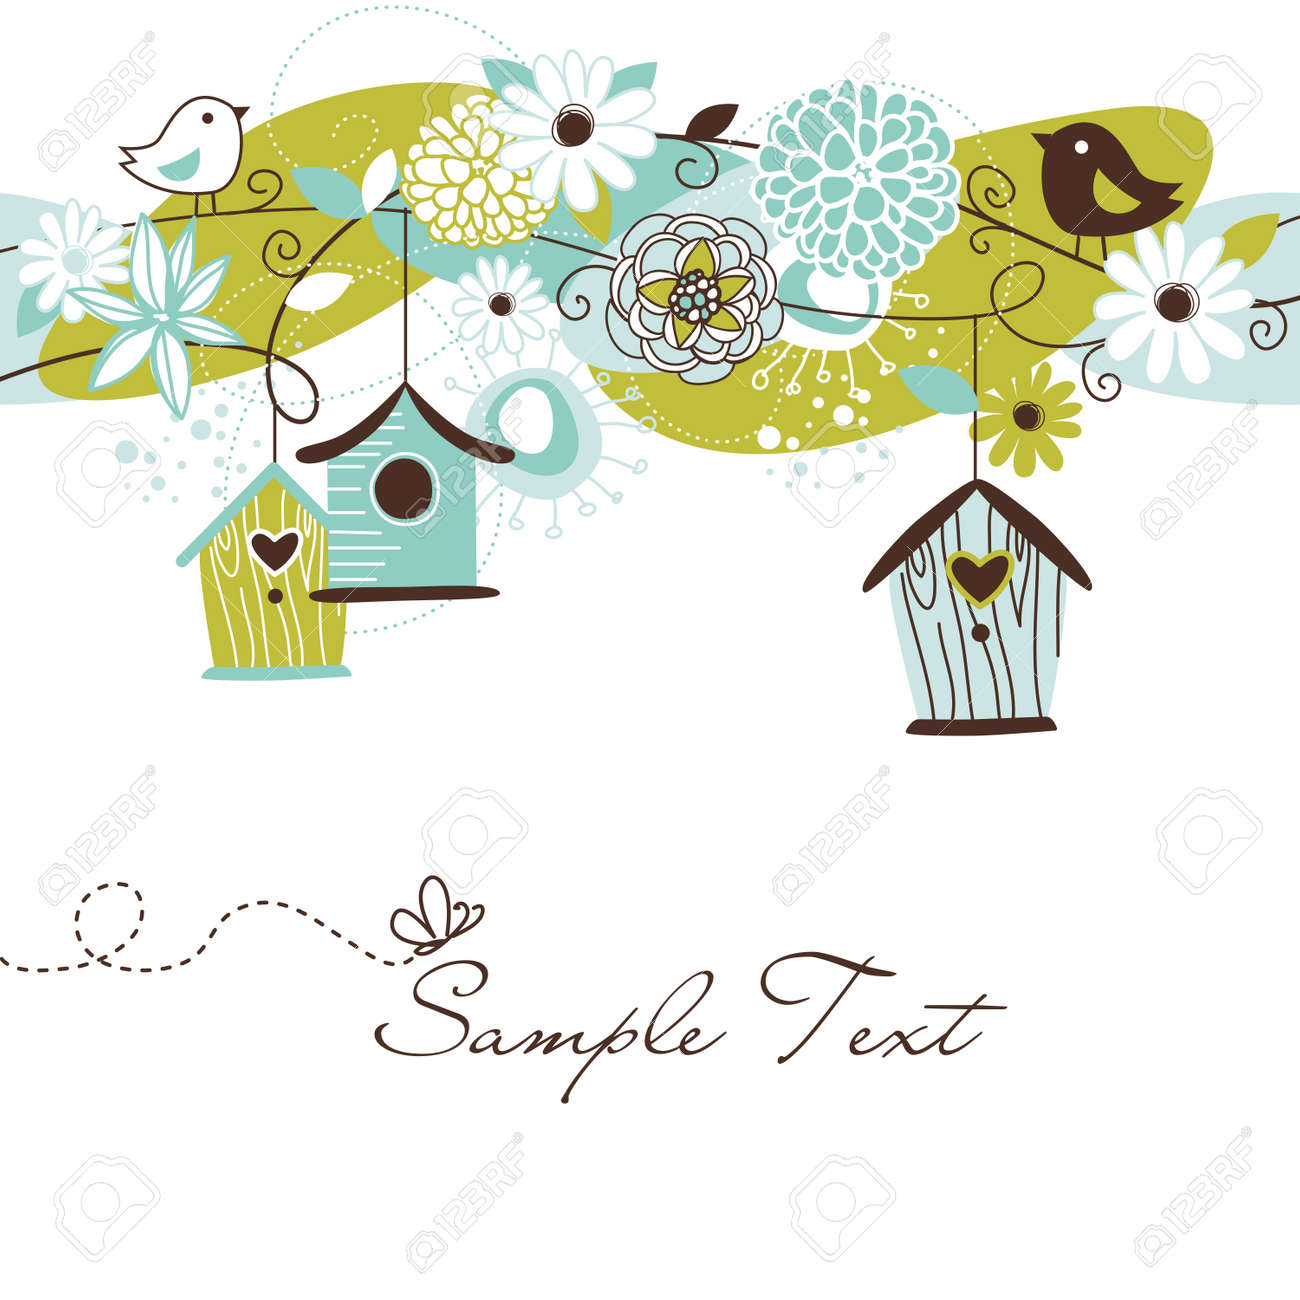 Beautiful Spring background with bird houses, birds and flowers Stock Vector - 13346964